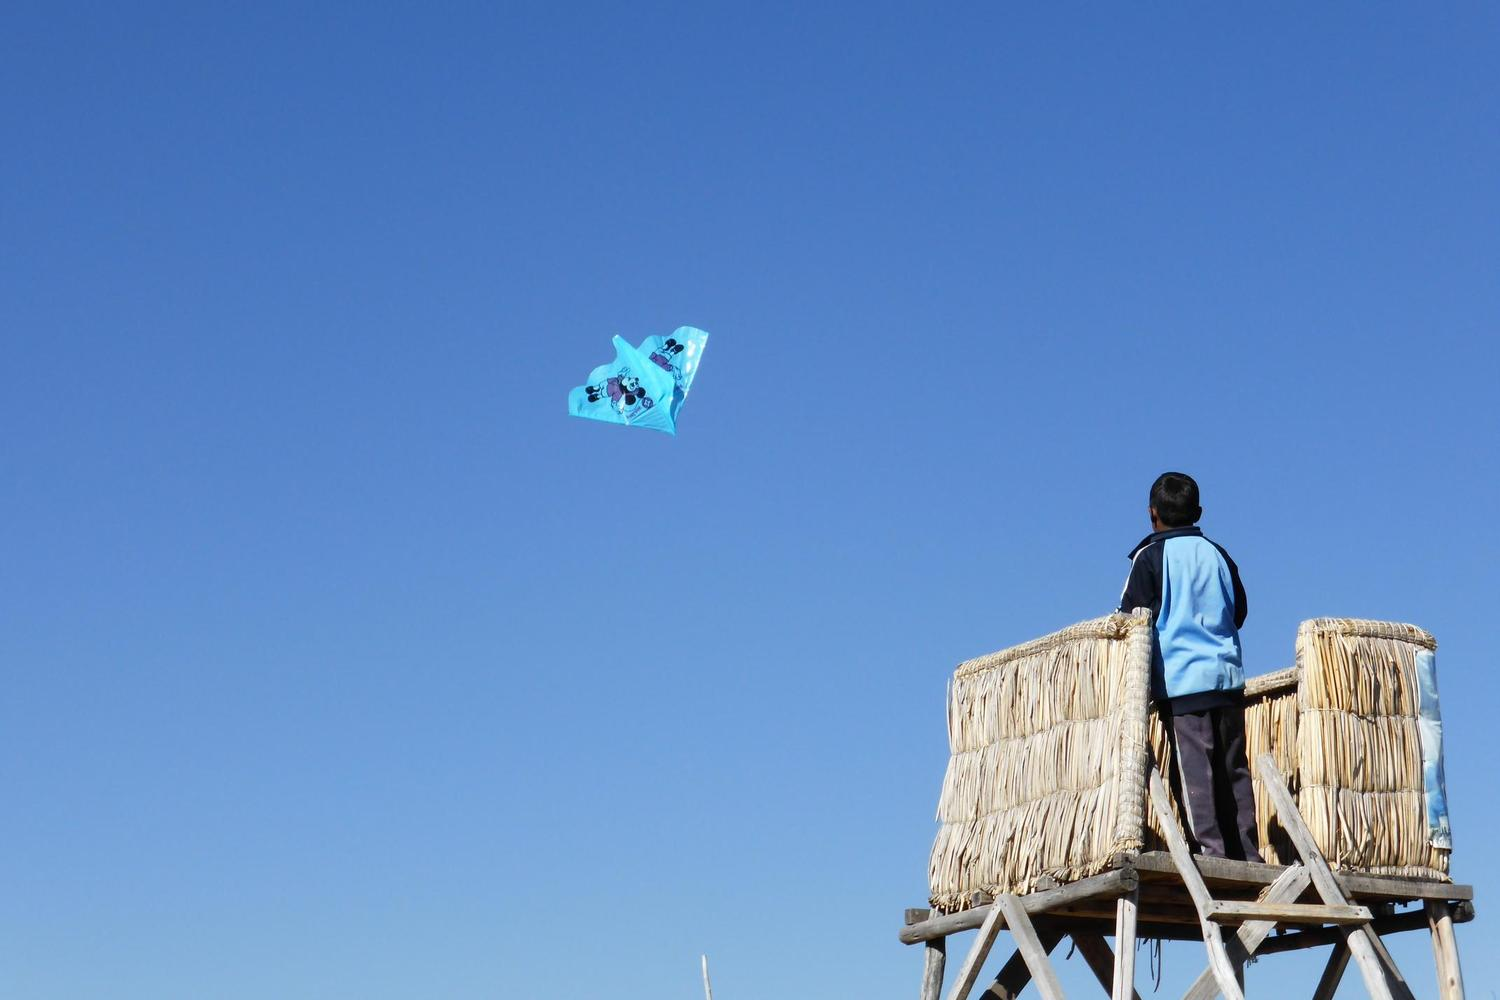 Flying a kite from the Uros floating islands on Lake Titicaca